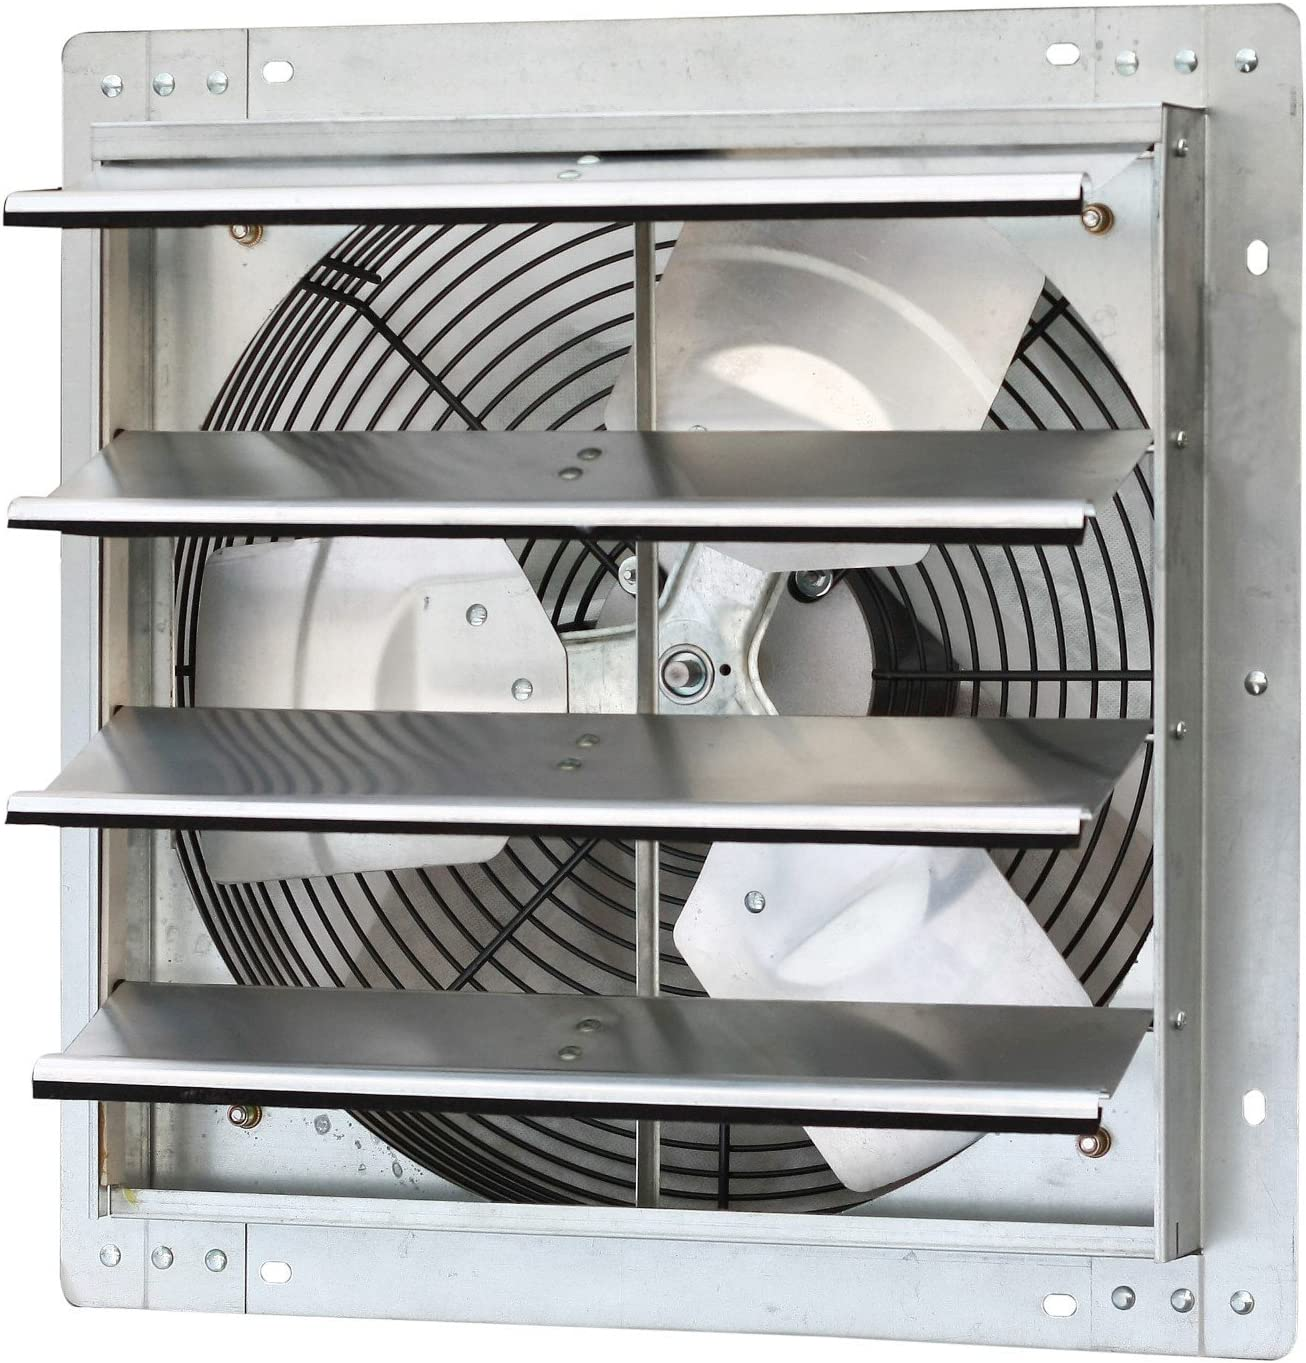 iLiving – 16 Wall Mounted Exhaust Fan – Automatic Shutter – Variable Speed – Vent Fan For Home Attic, Shed, or Garage Ventilation, 1200 CFM, 1800 SQF Coverage Area